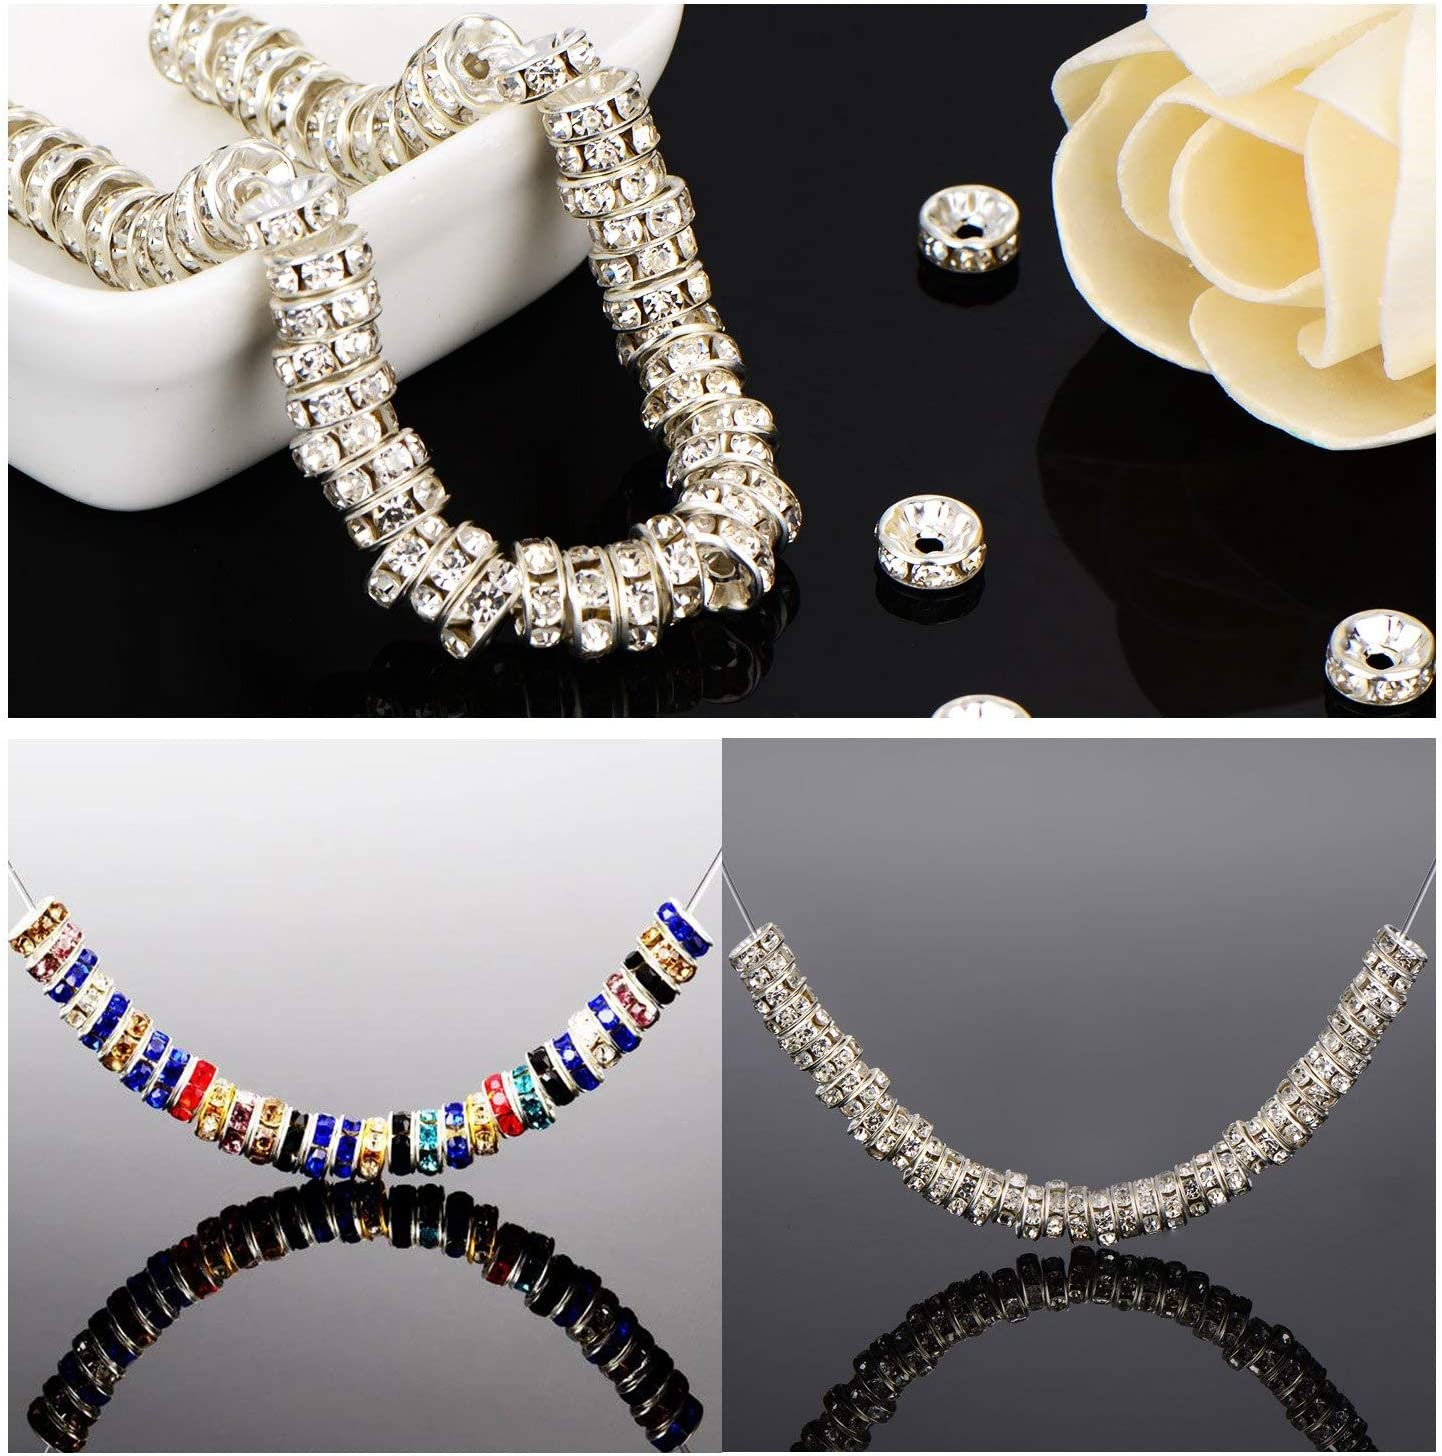 Allb 100Pcs Rondelle Spacer Beads 6mm Silver Plated Czech Crystal Rhinestone for Jewelry Making Loose Beads for Bracelets